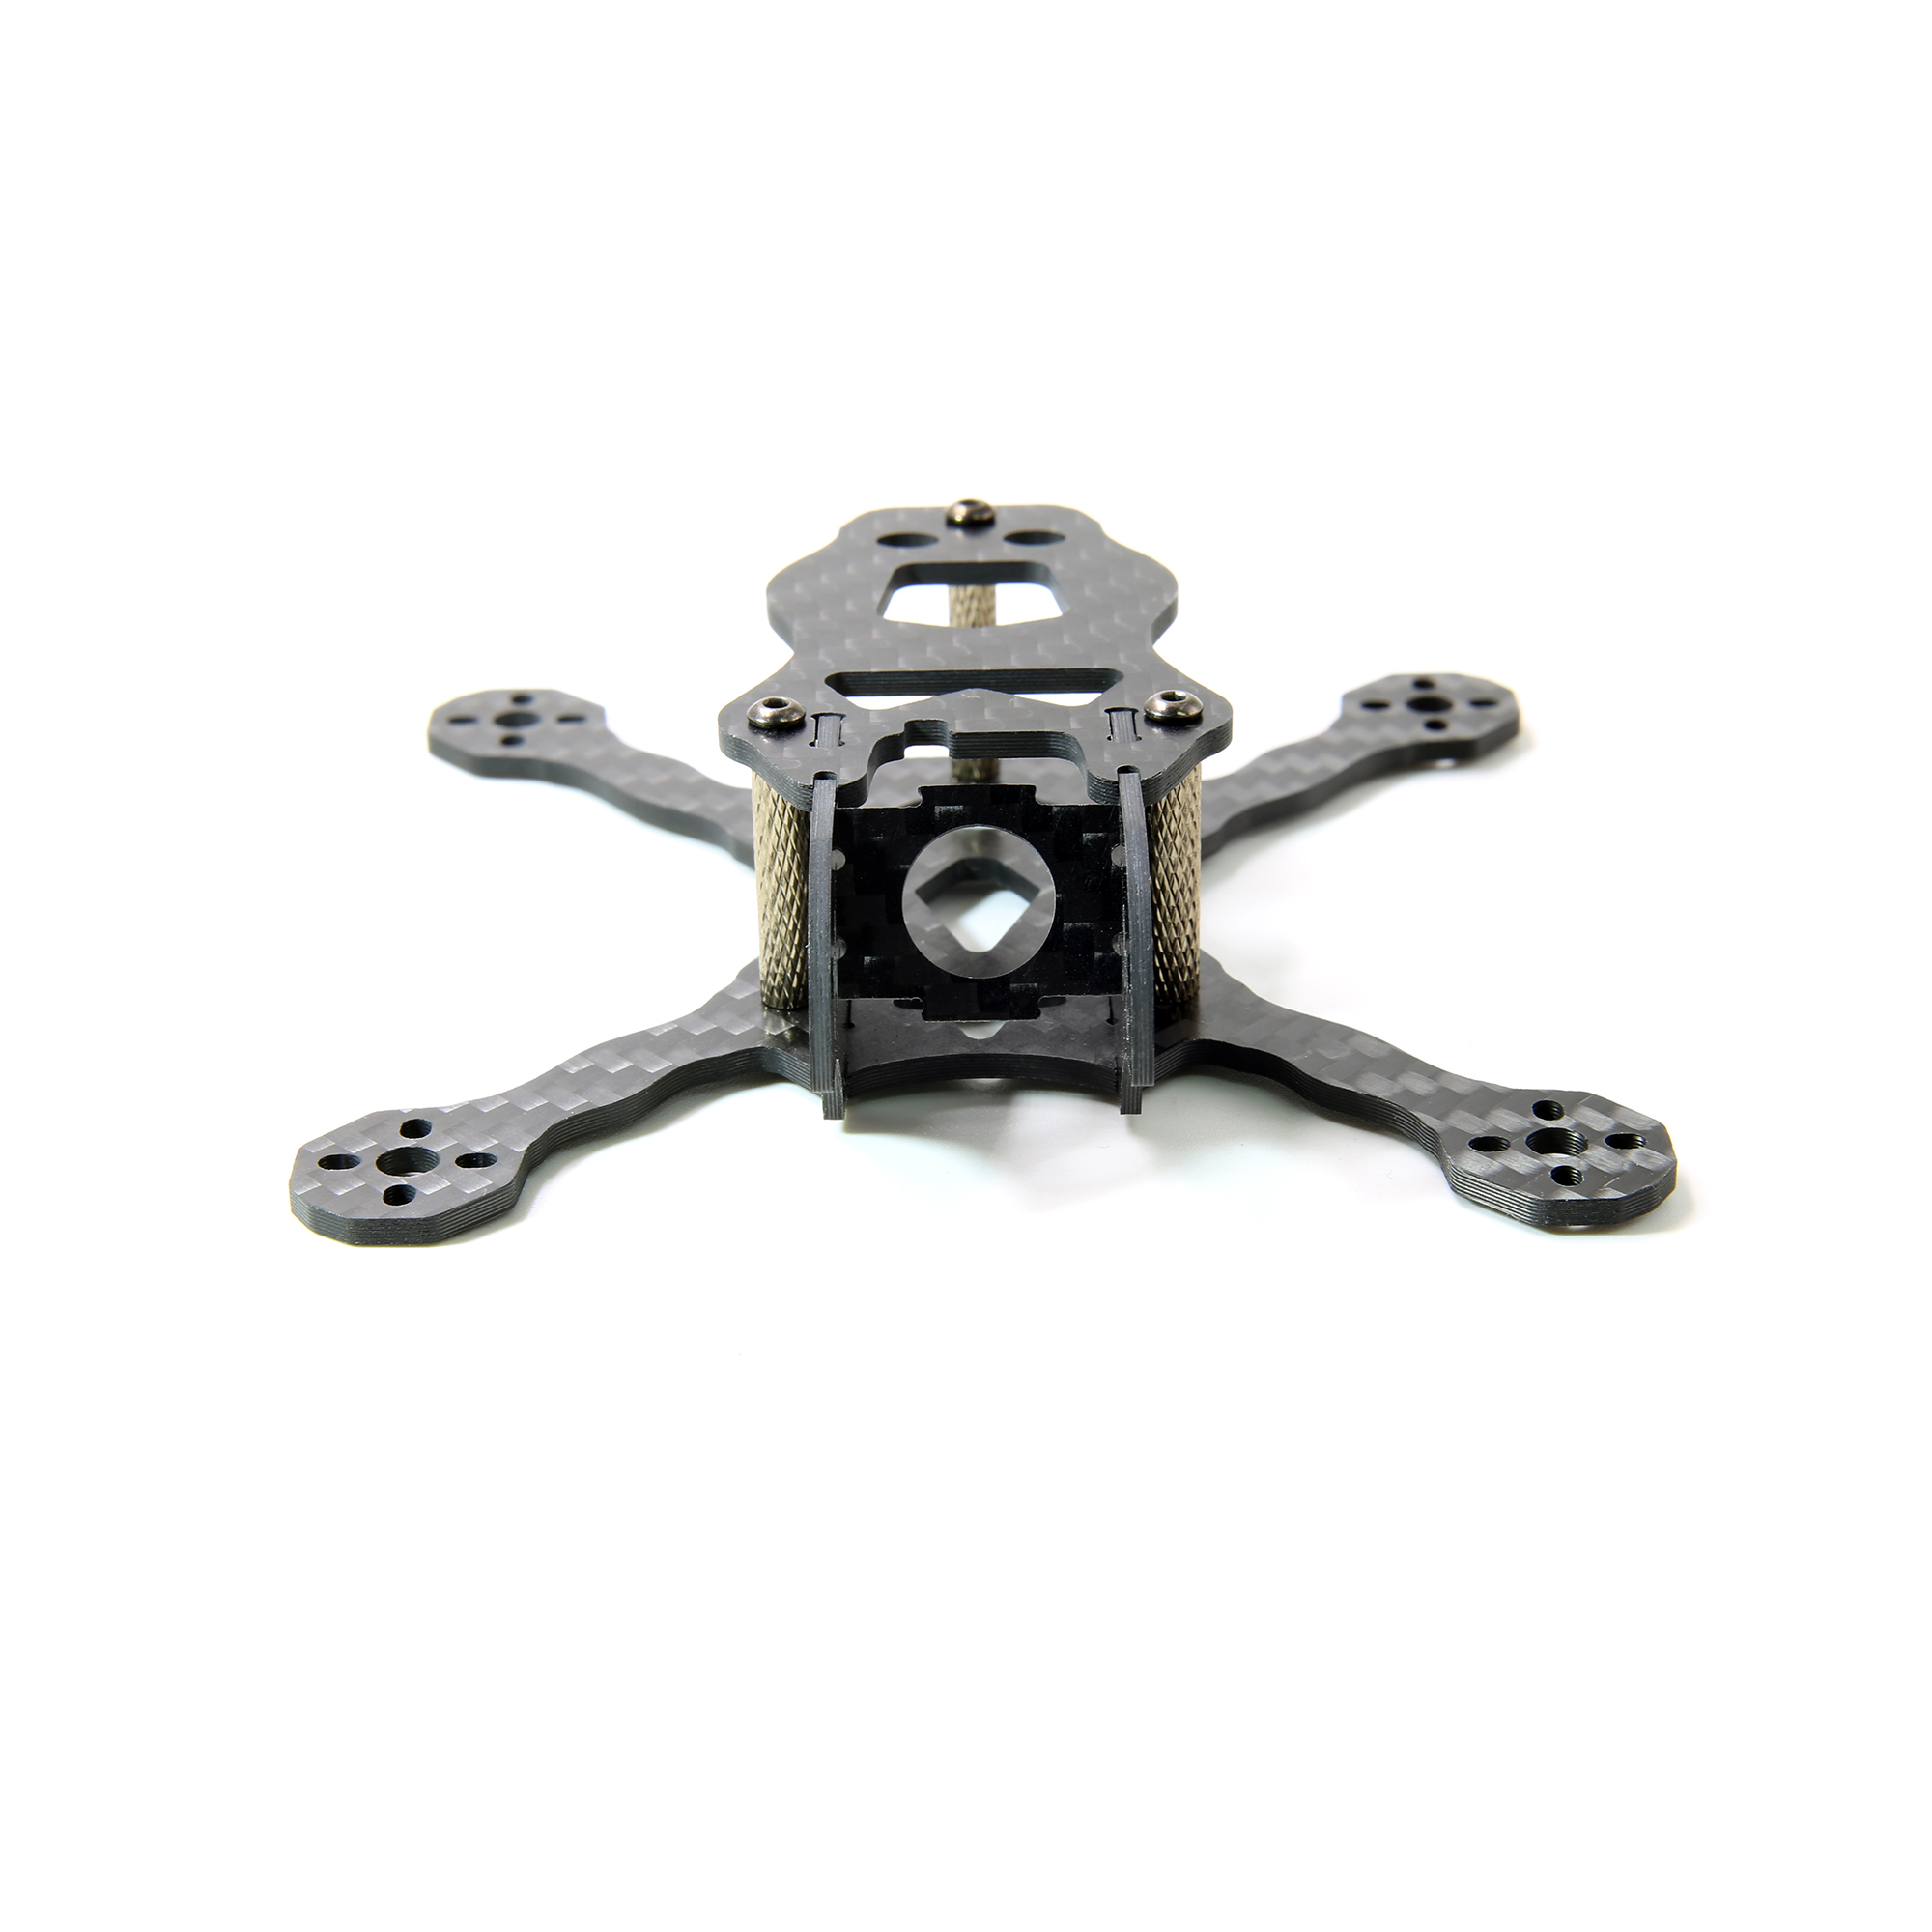 GEPRC GEP HX2 Hummingbird 110mm Micro FPV Racing X Frame RC Drone Carbon Fiber Supports Runcam Micro Swift